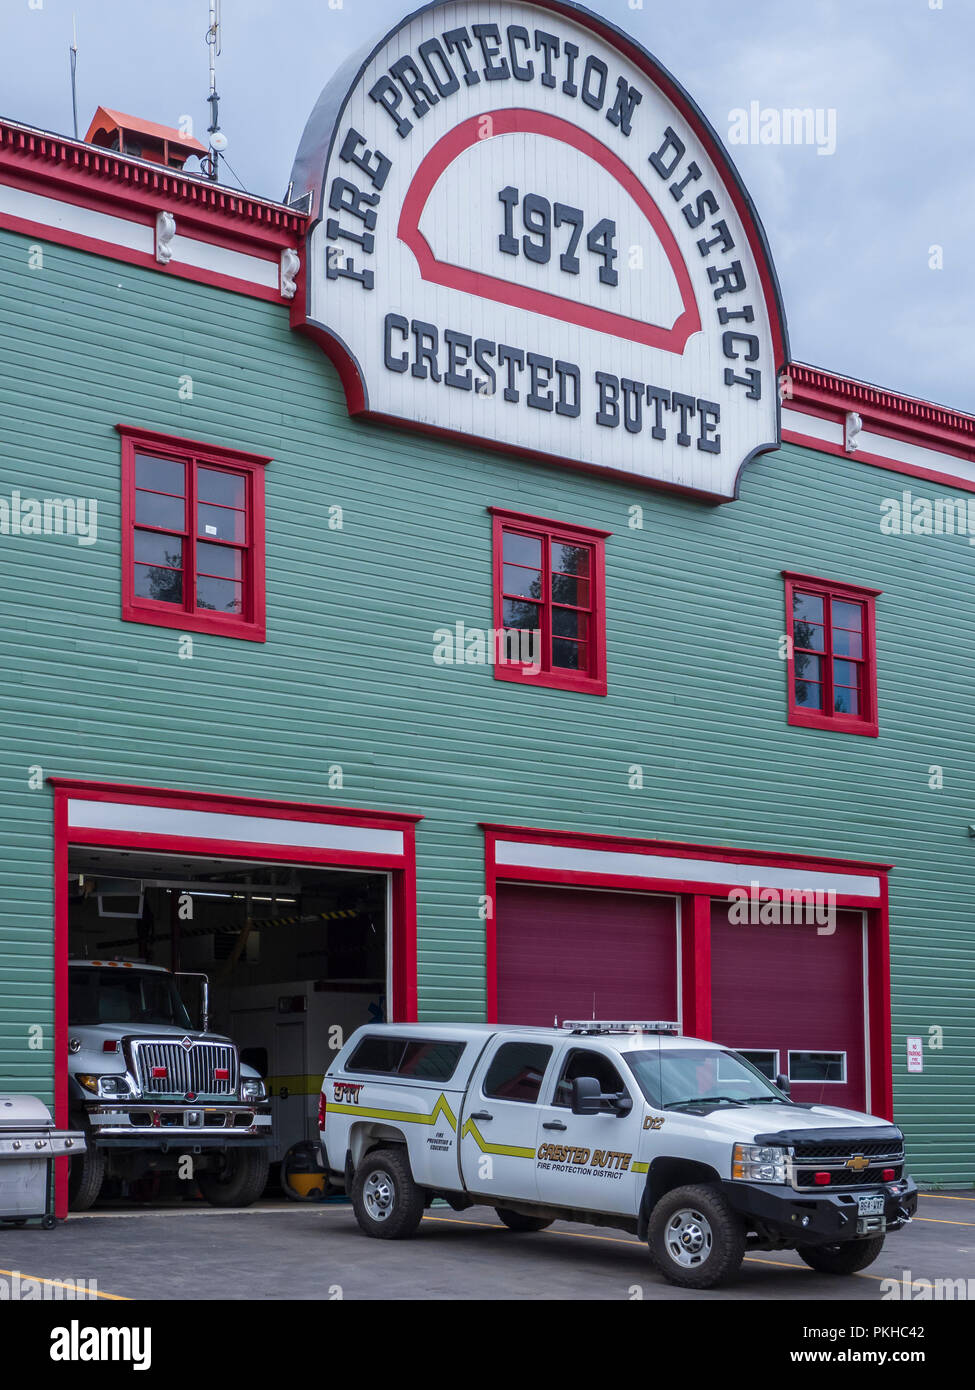 Fire protection district fire station, Crested Butte, Colorado. - Stock Image